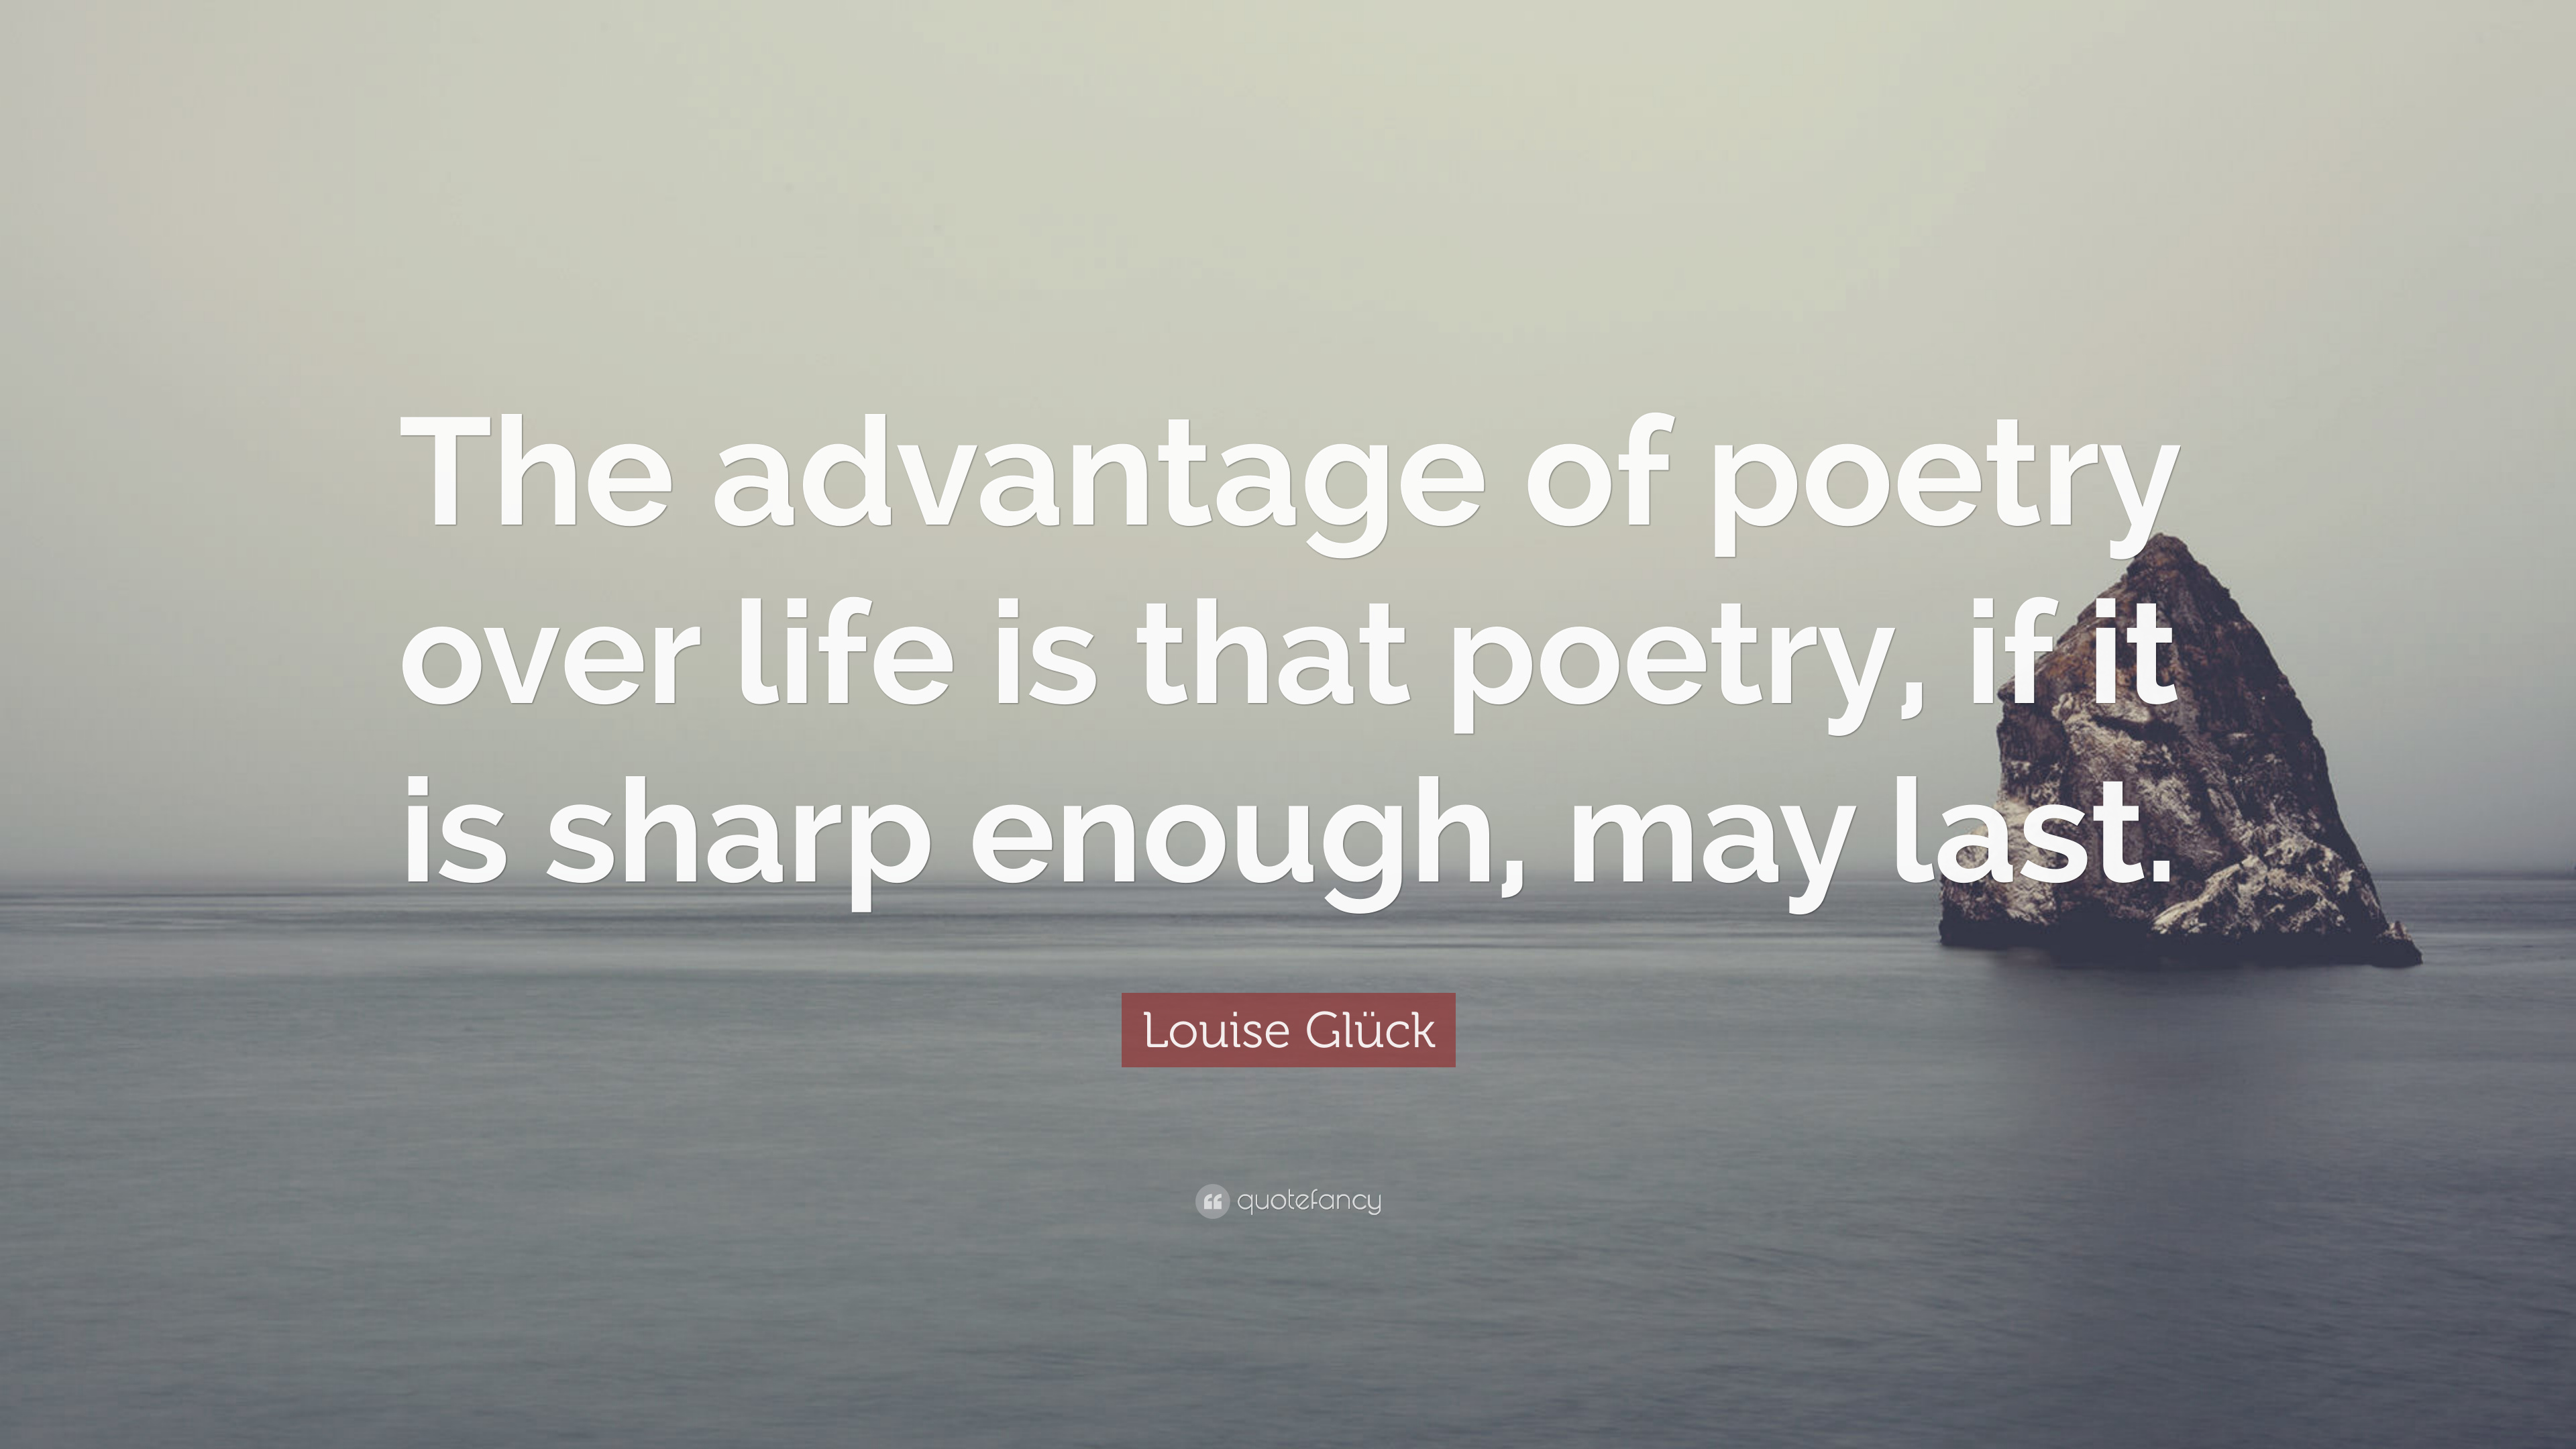 What are the advantages and disadvantages the diminishment of form in modern poetry?